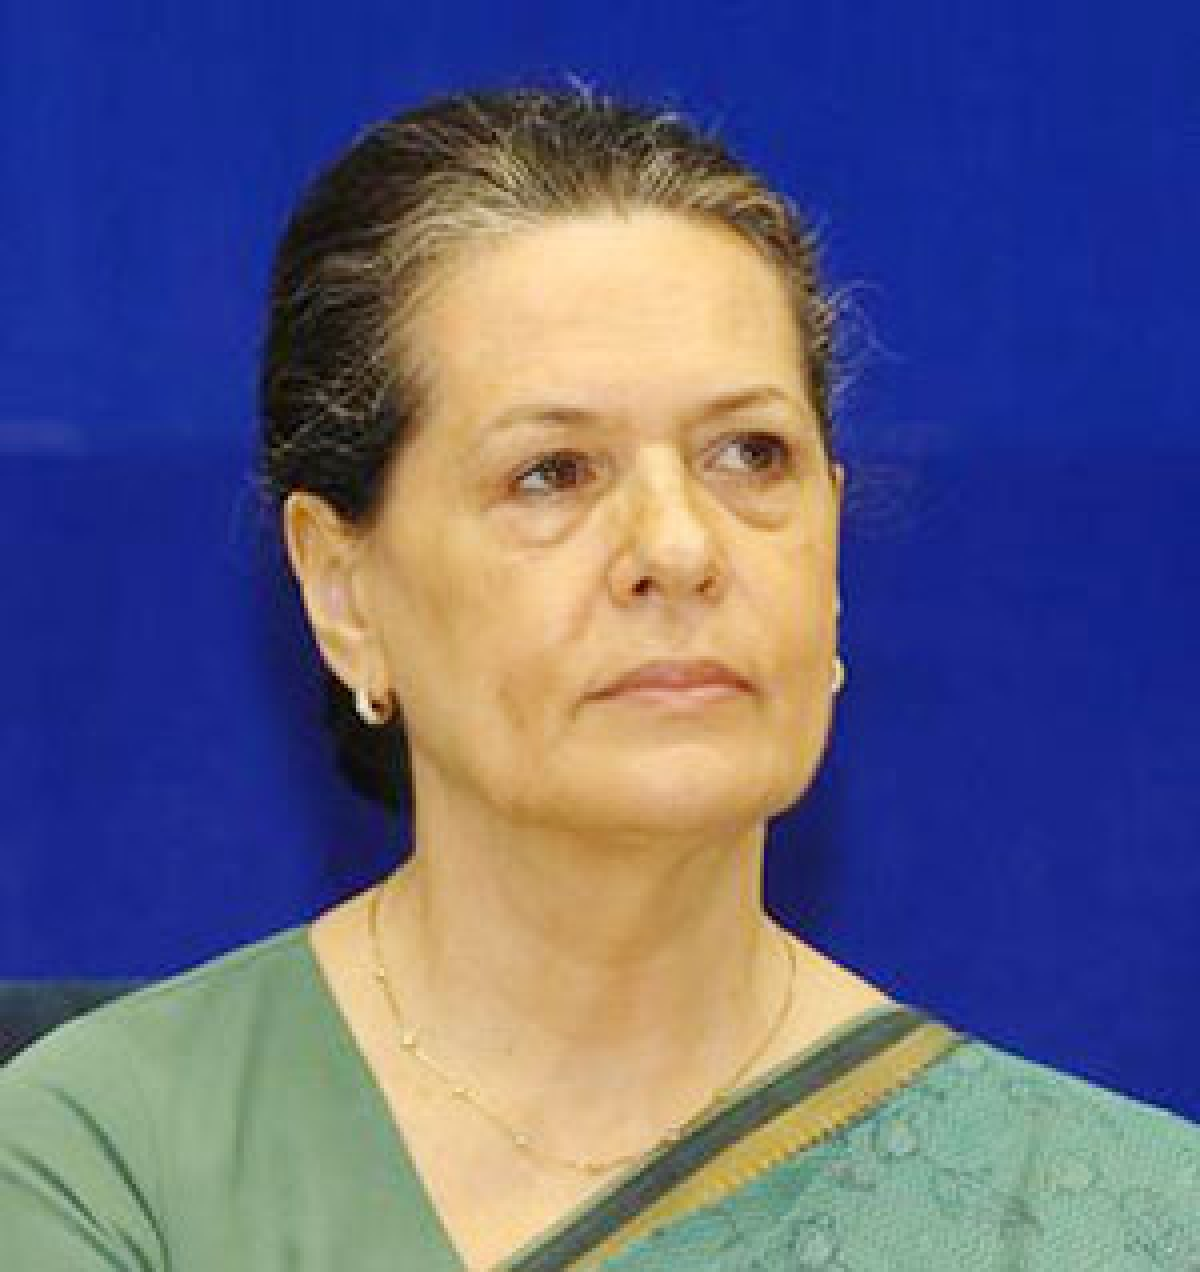 Sonia bats for Nehru's legacy